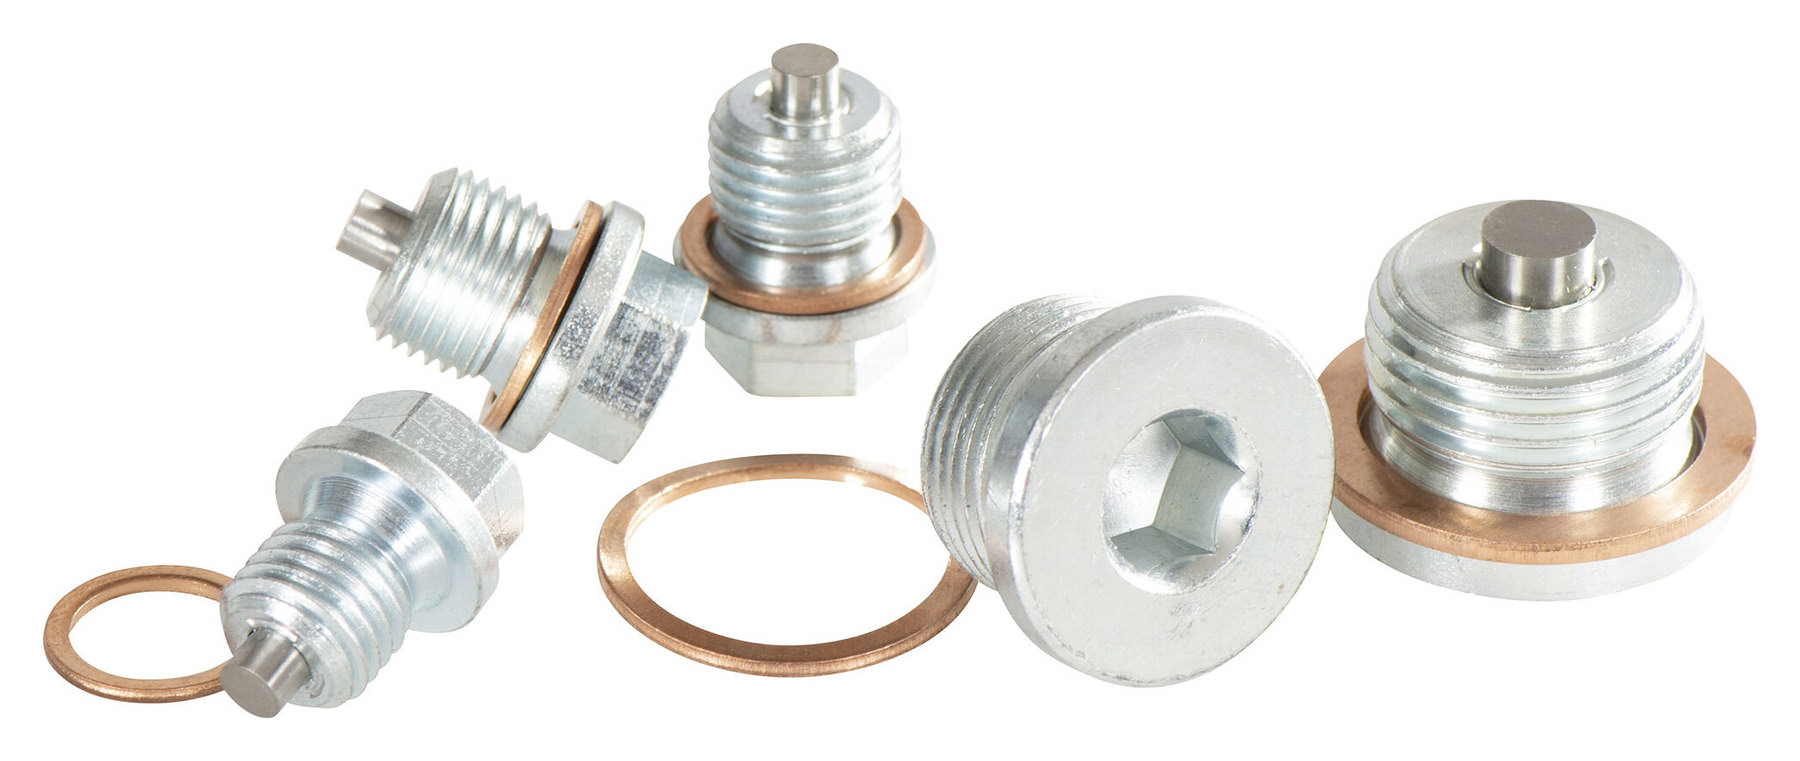 Acquire Oil drain plug through the fence certified page thanks to its positioning